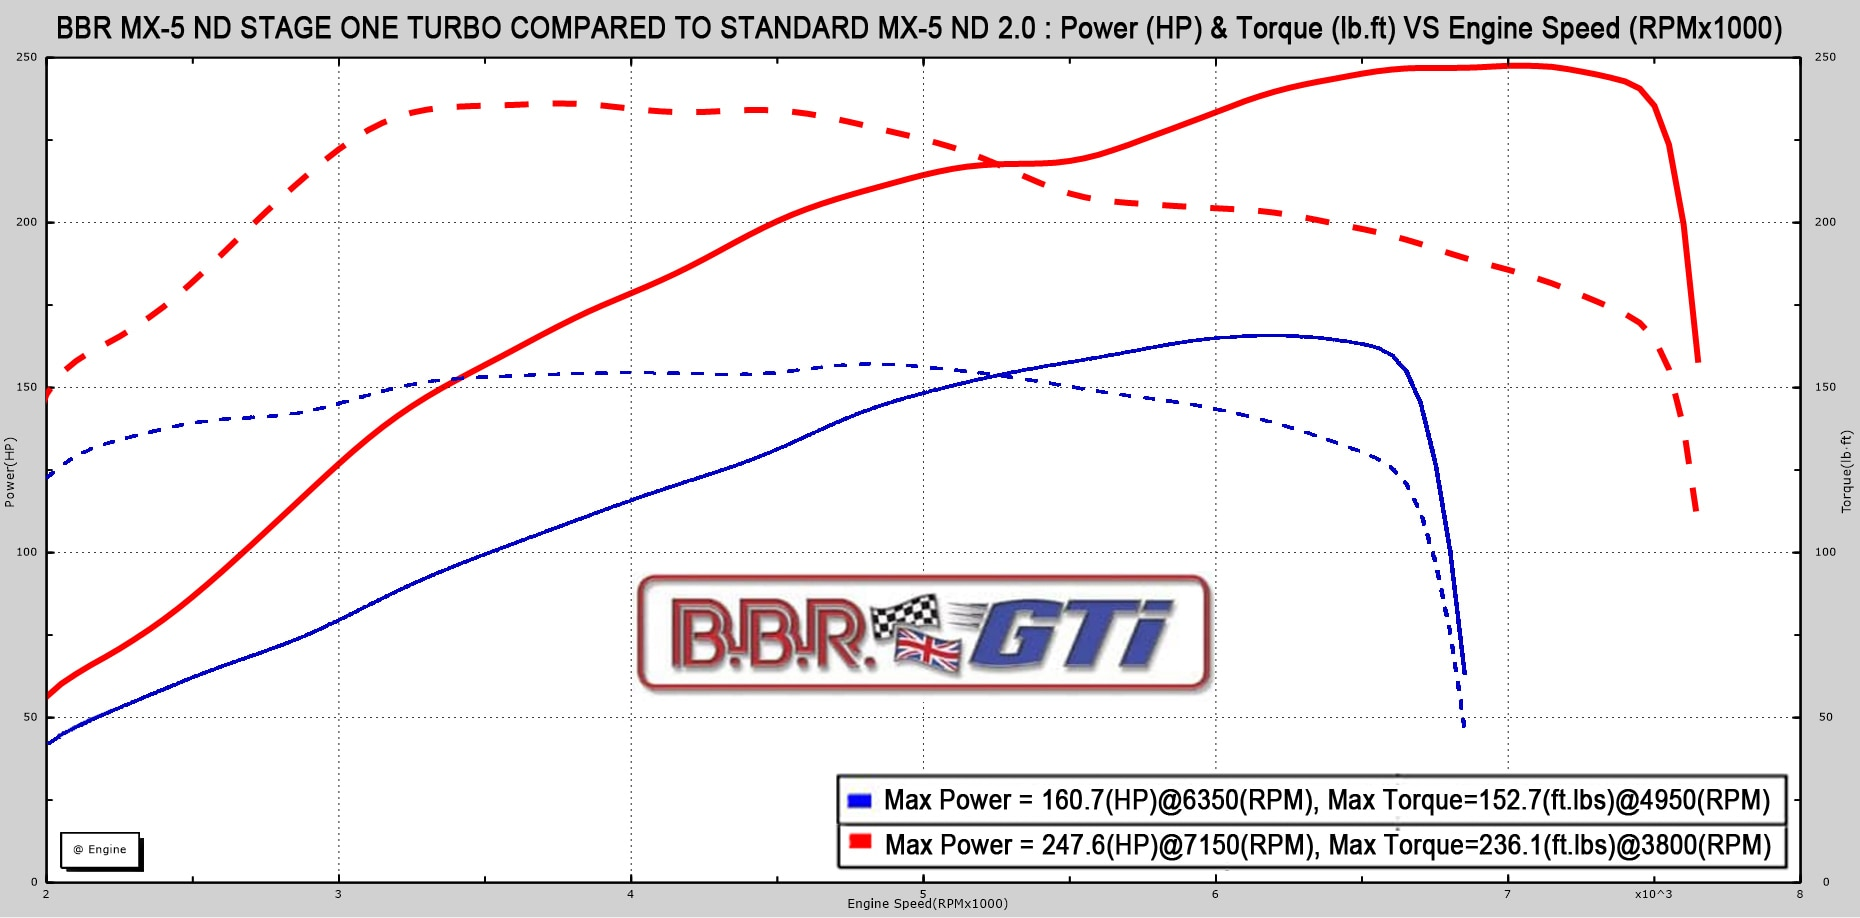 Mazda Miata Turbo Kit Increases Output To 248 Horsepower 1984 Rx 7 Engine Diagram Bbr Mx 5 Nd Stage 1 Power Curve